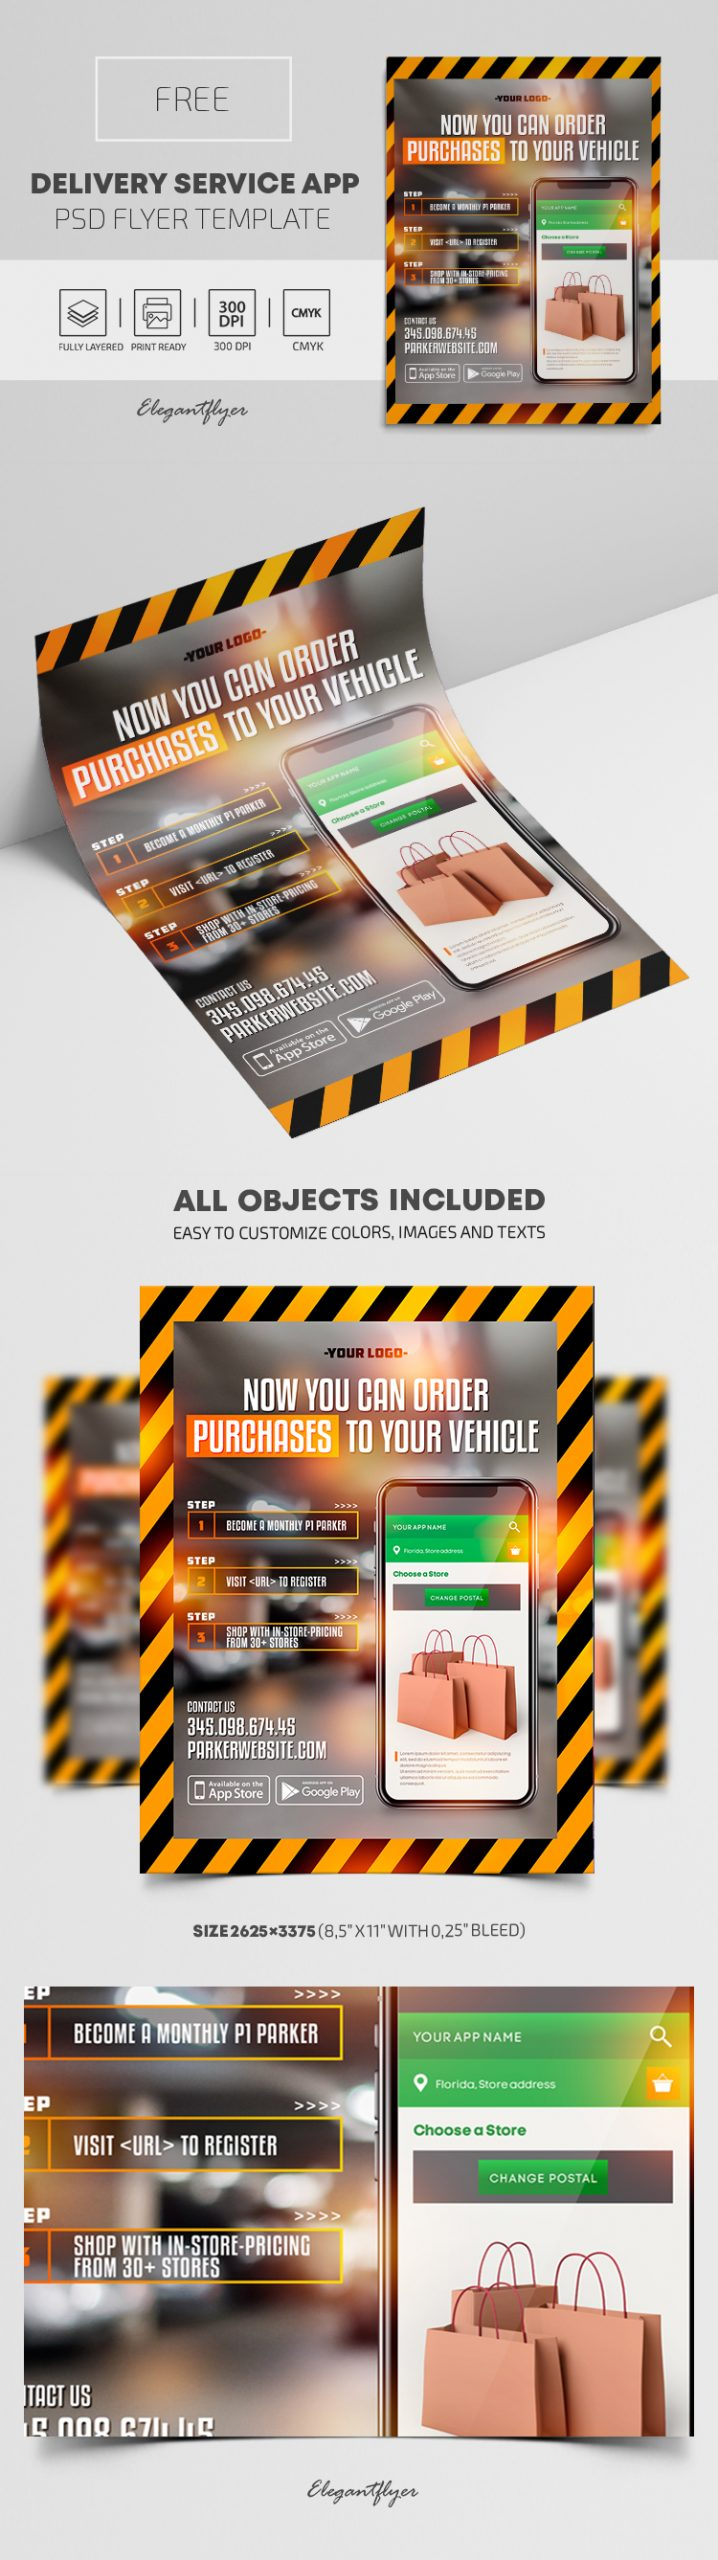 Delivery Service App – Free PSD Flyer Template